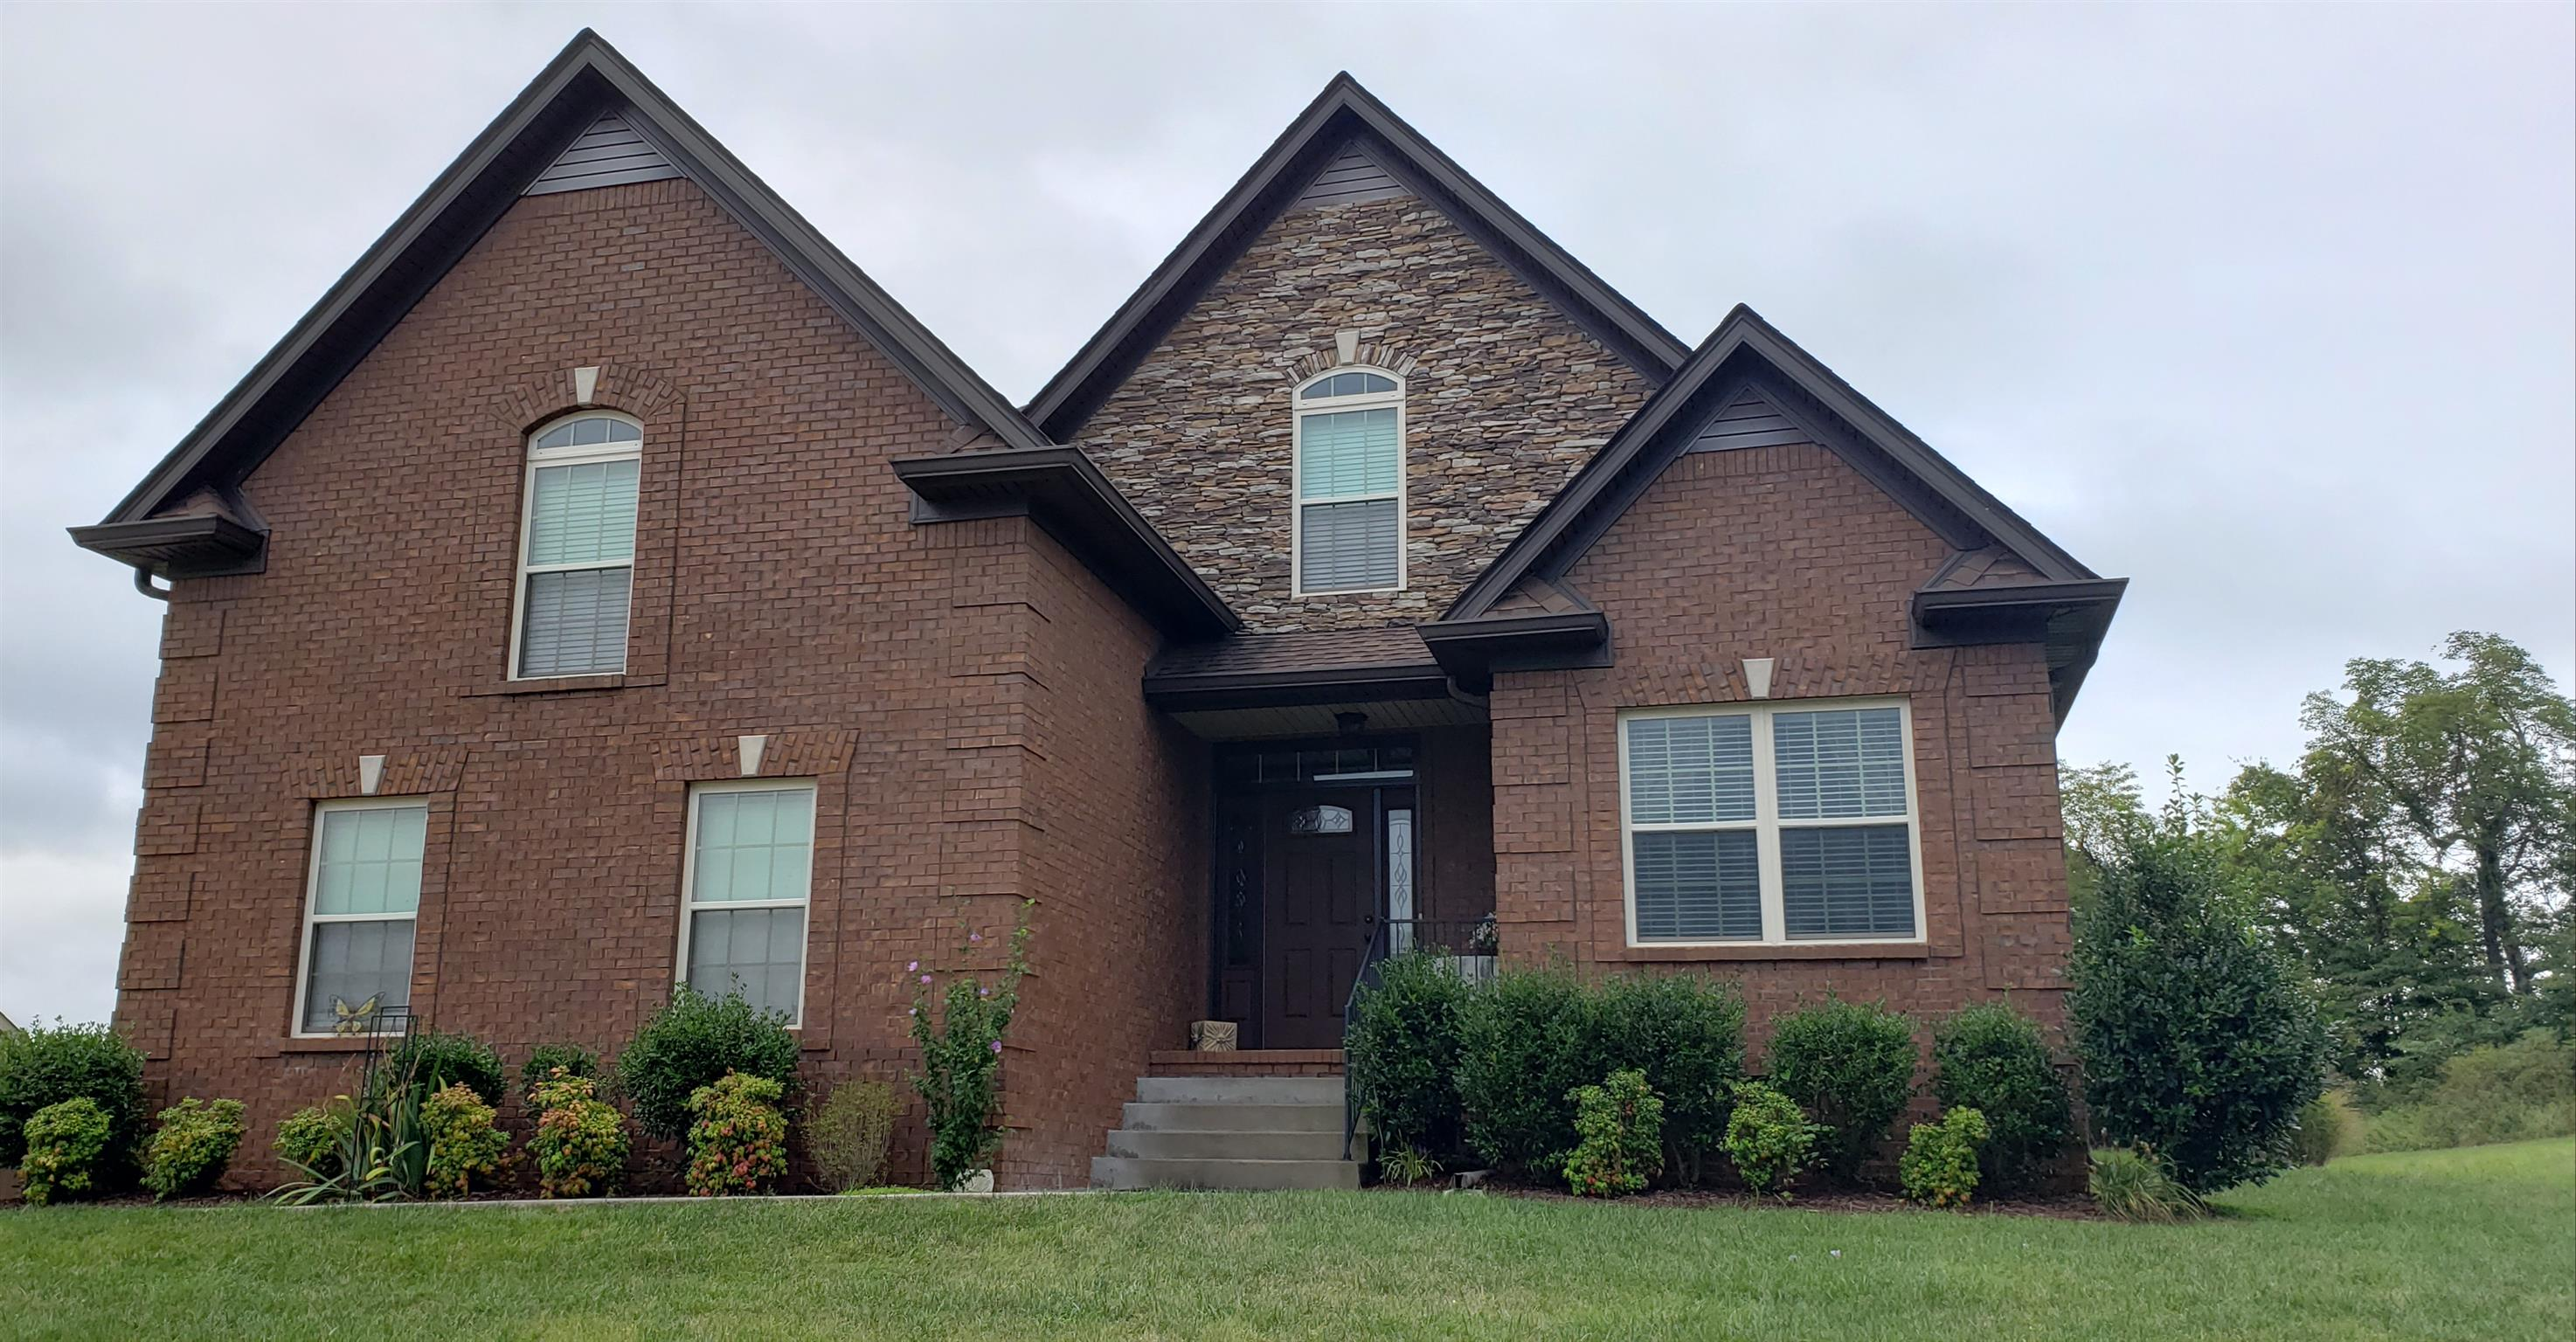 3632 Prestwicke Pl, Adams, TN 37010 - Adams, TN real estate listing